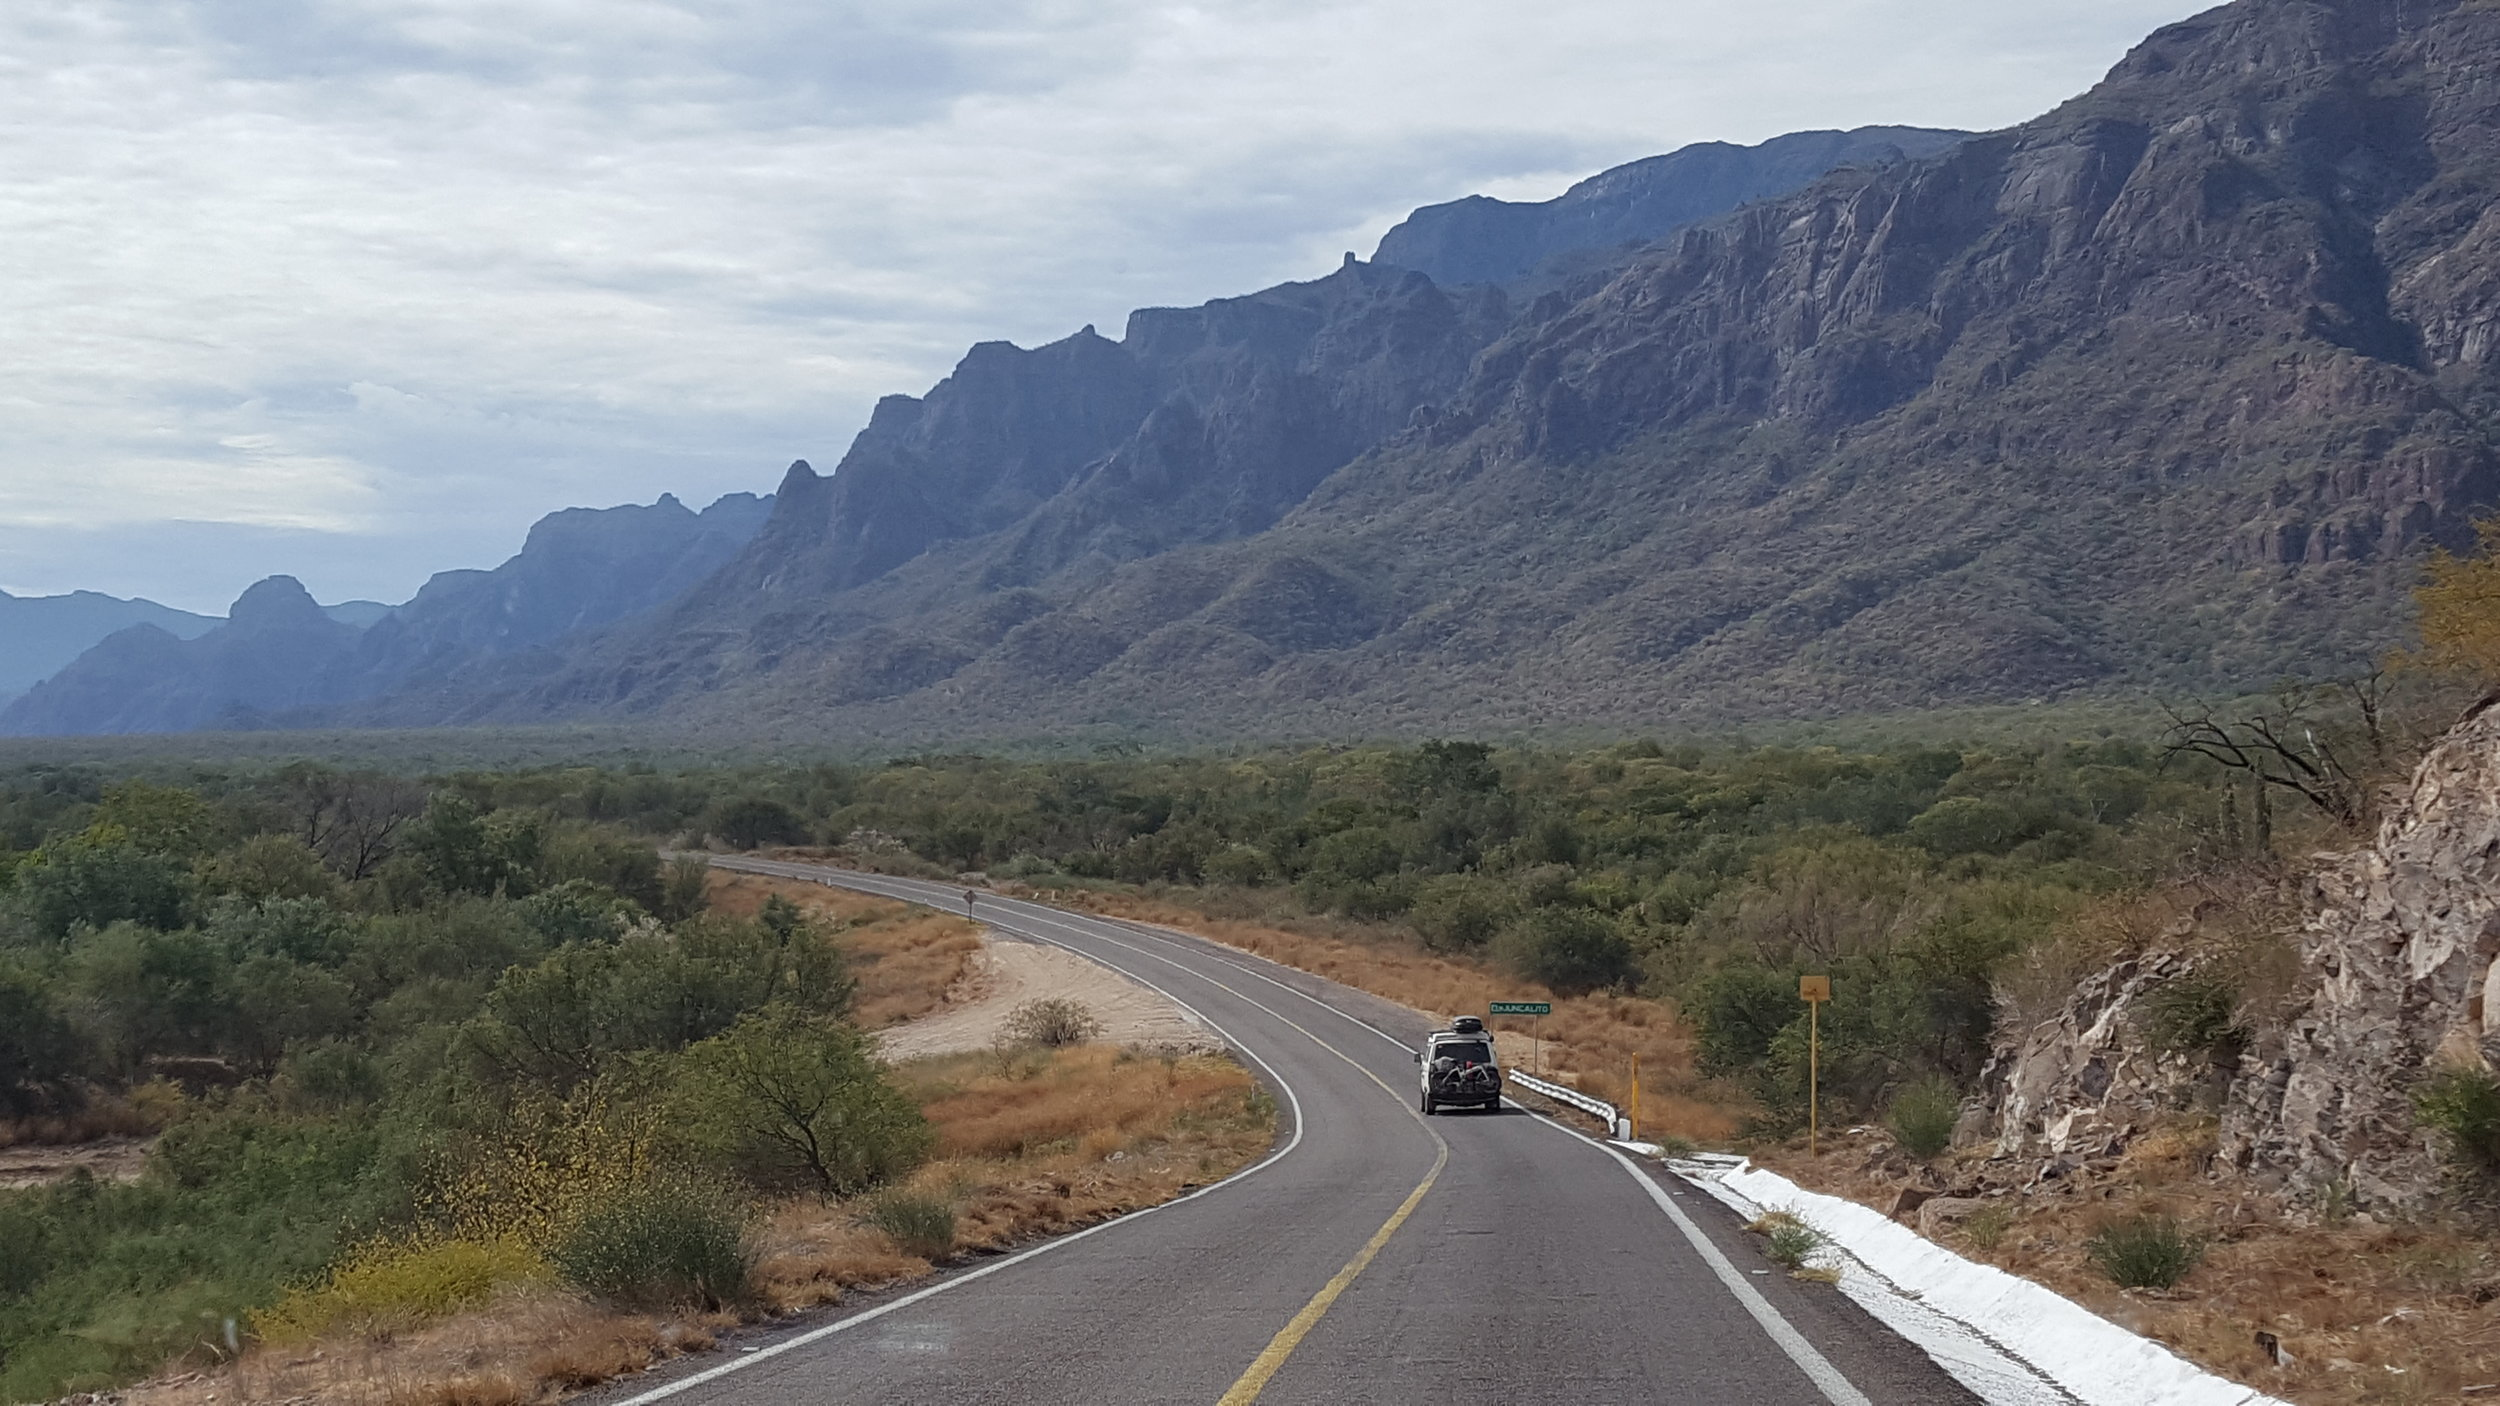 Just your average Baja scenery. -Caravanning with Brad and Shannon.